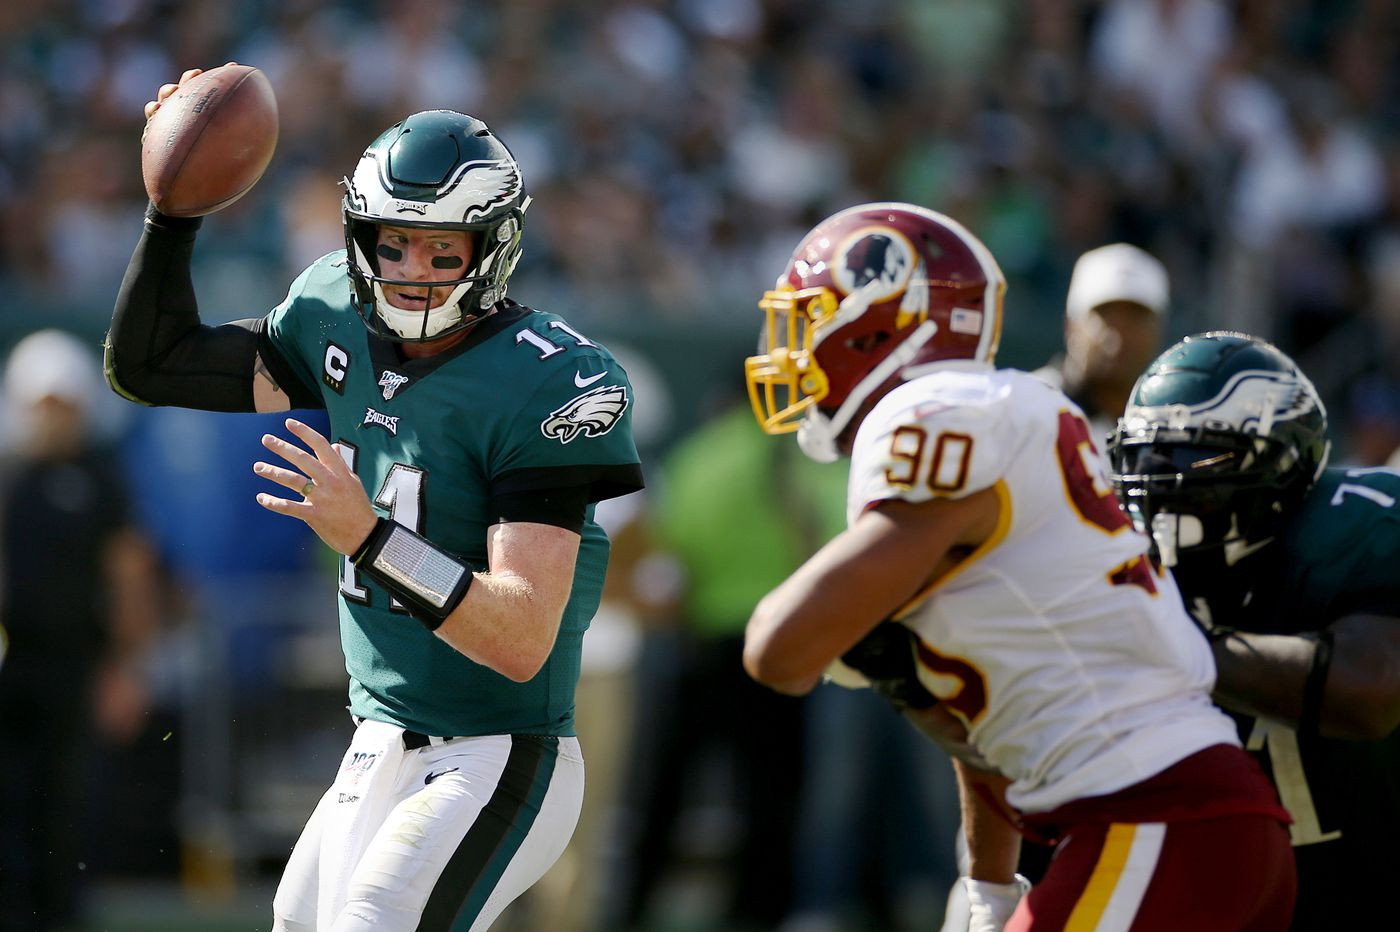 Joe Banner: Even without Malik Jackson, Eagles defensive line will dominate Falcons O-line Sunday | Q&A